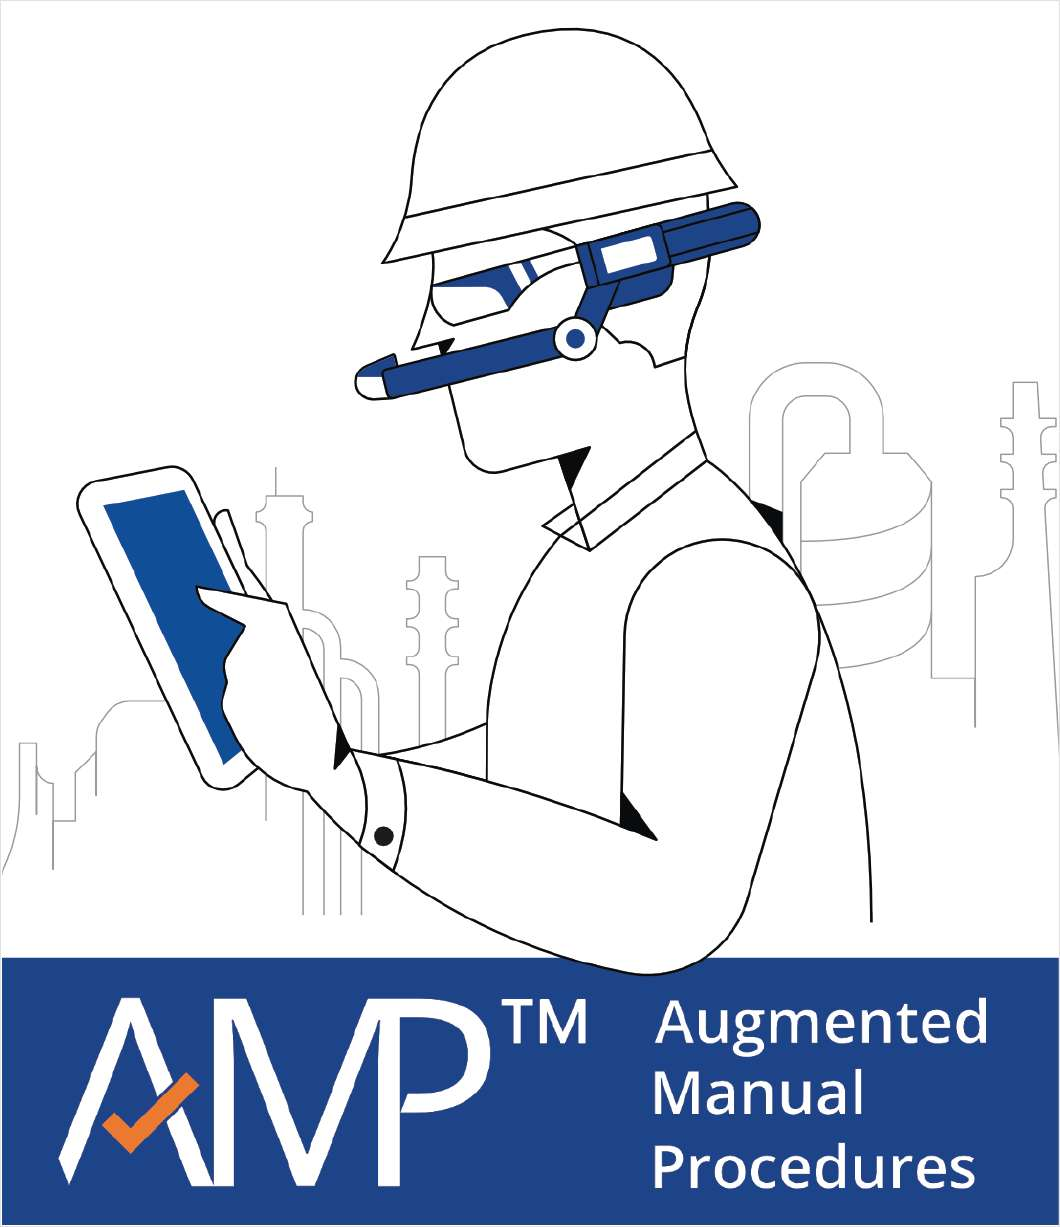 Augmented Manual Procedures (AMP) Can Help Improve Process Operations